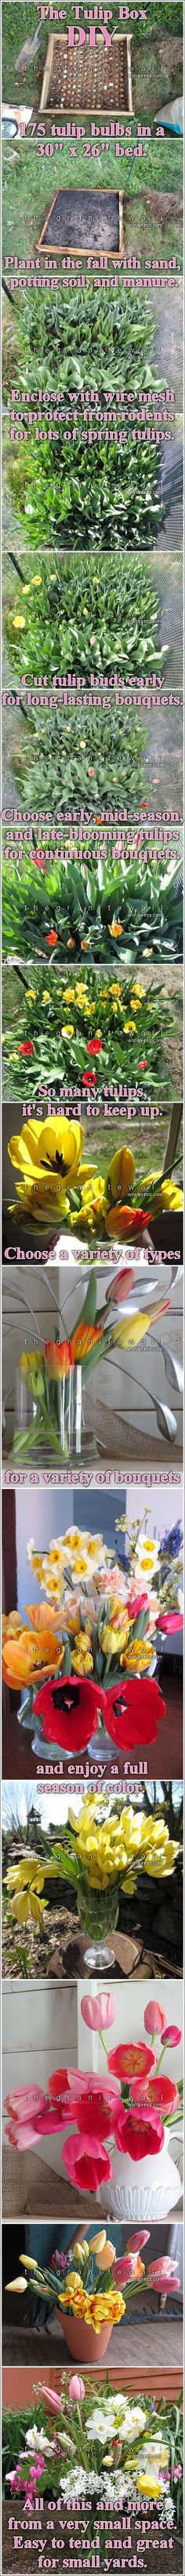 the tulip box DIY - how to get a lot of tulip bouquets from a very small garden space